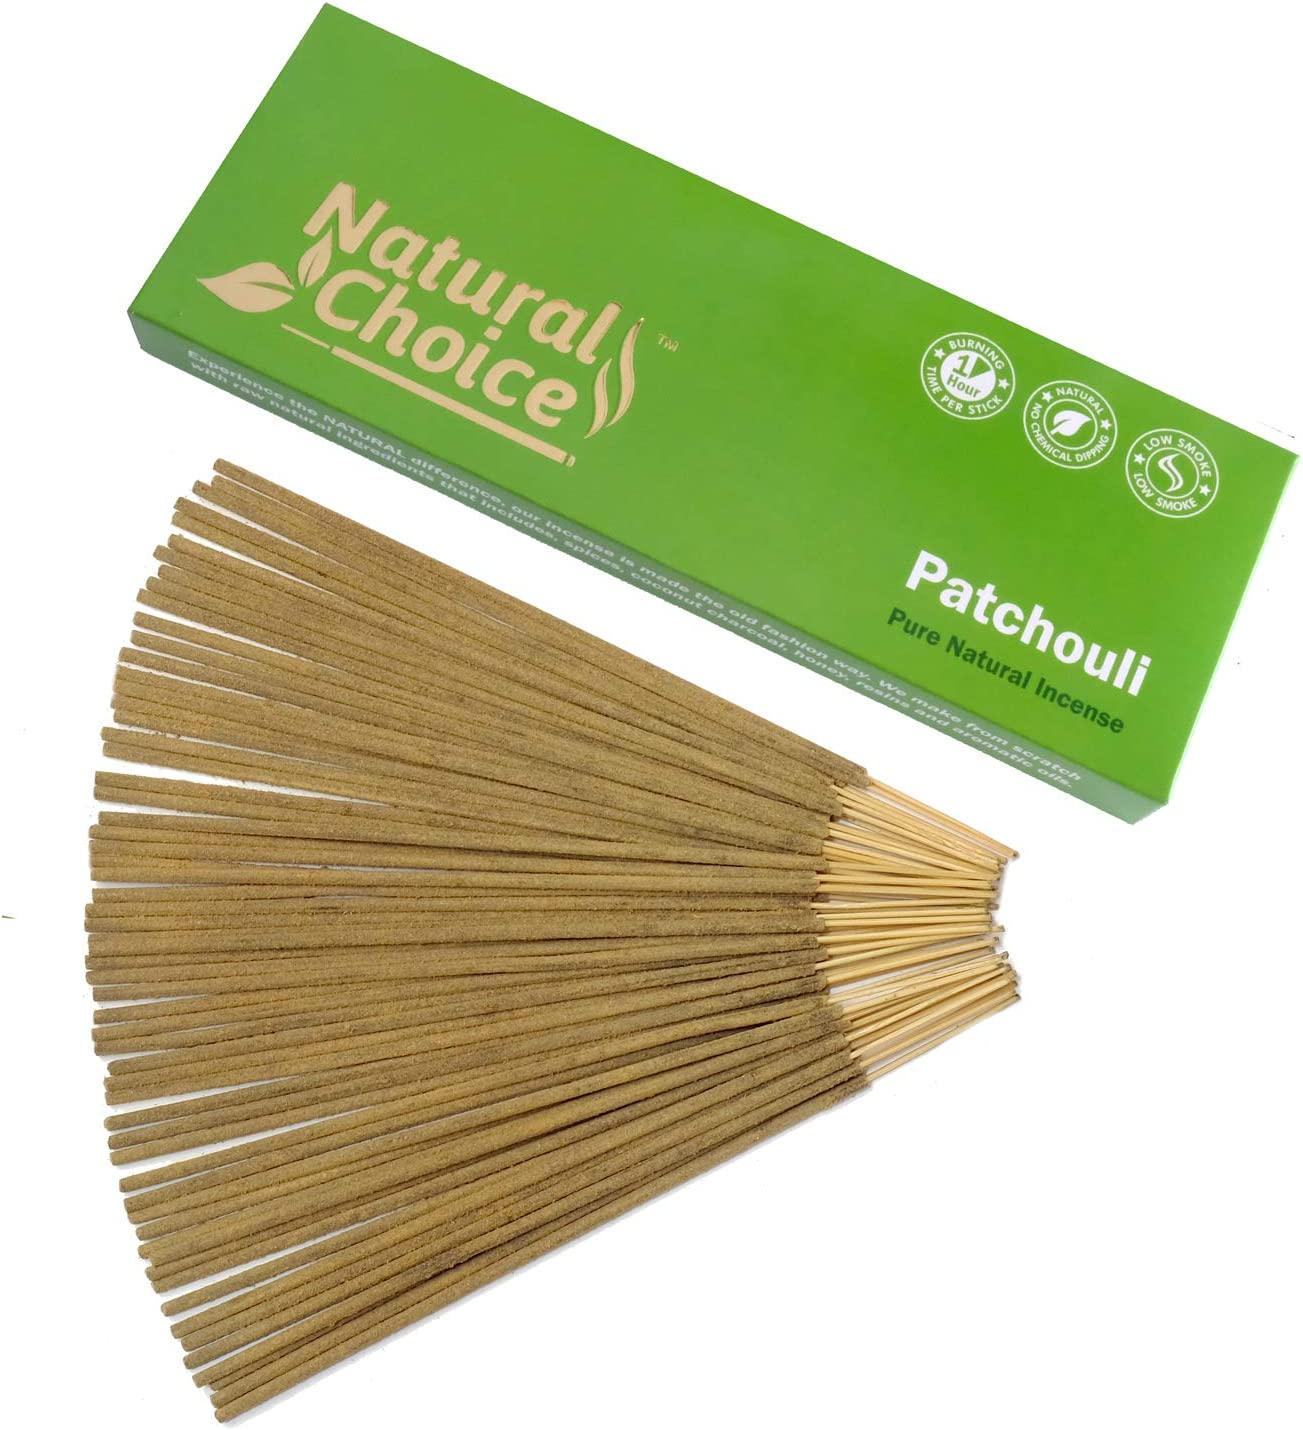 LOT OF 100 Stick GR PATCHOULI Incense 5 TUBE OF 20 Sticks = 100 STICKS PATCHOULY